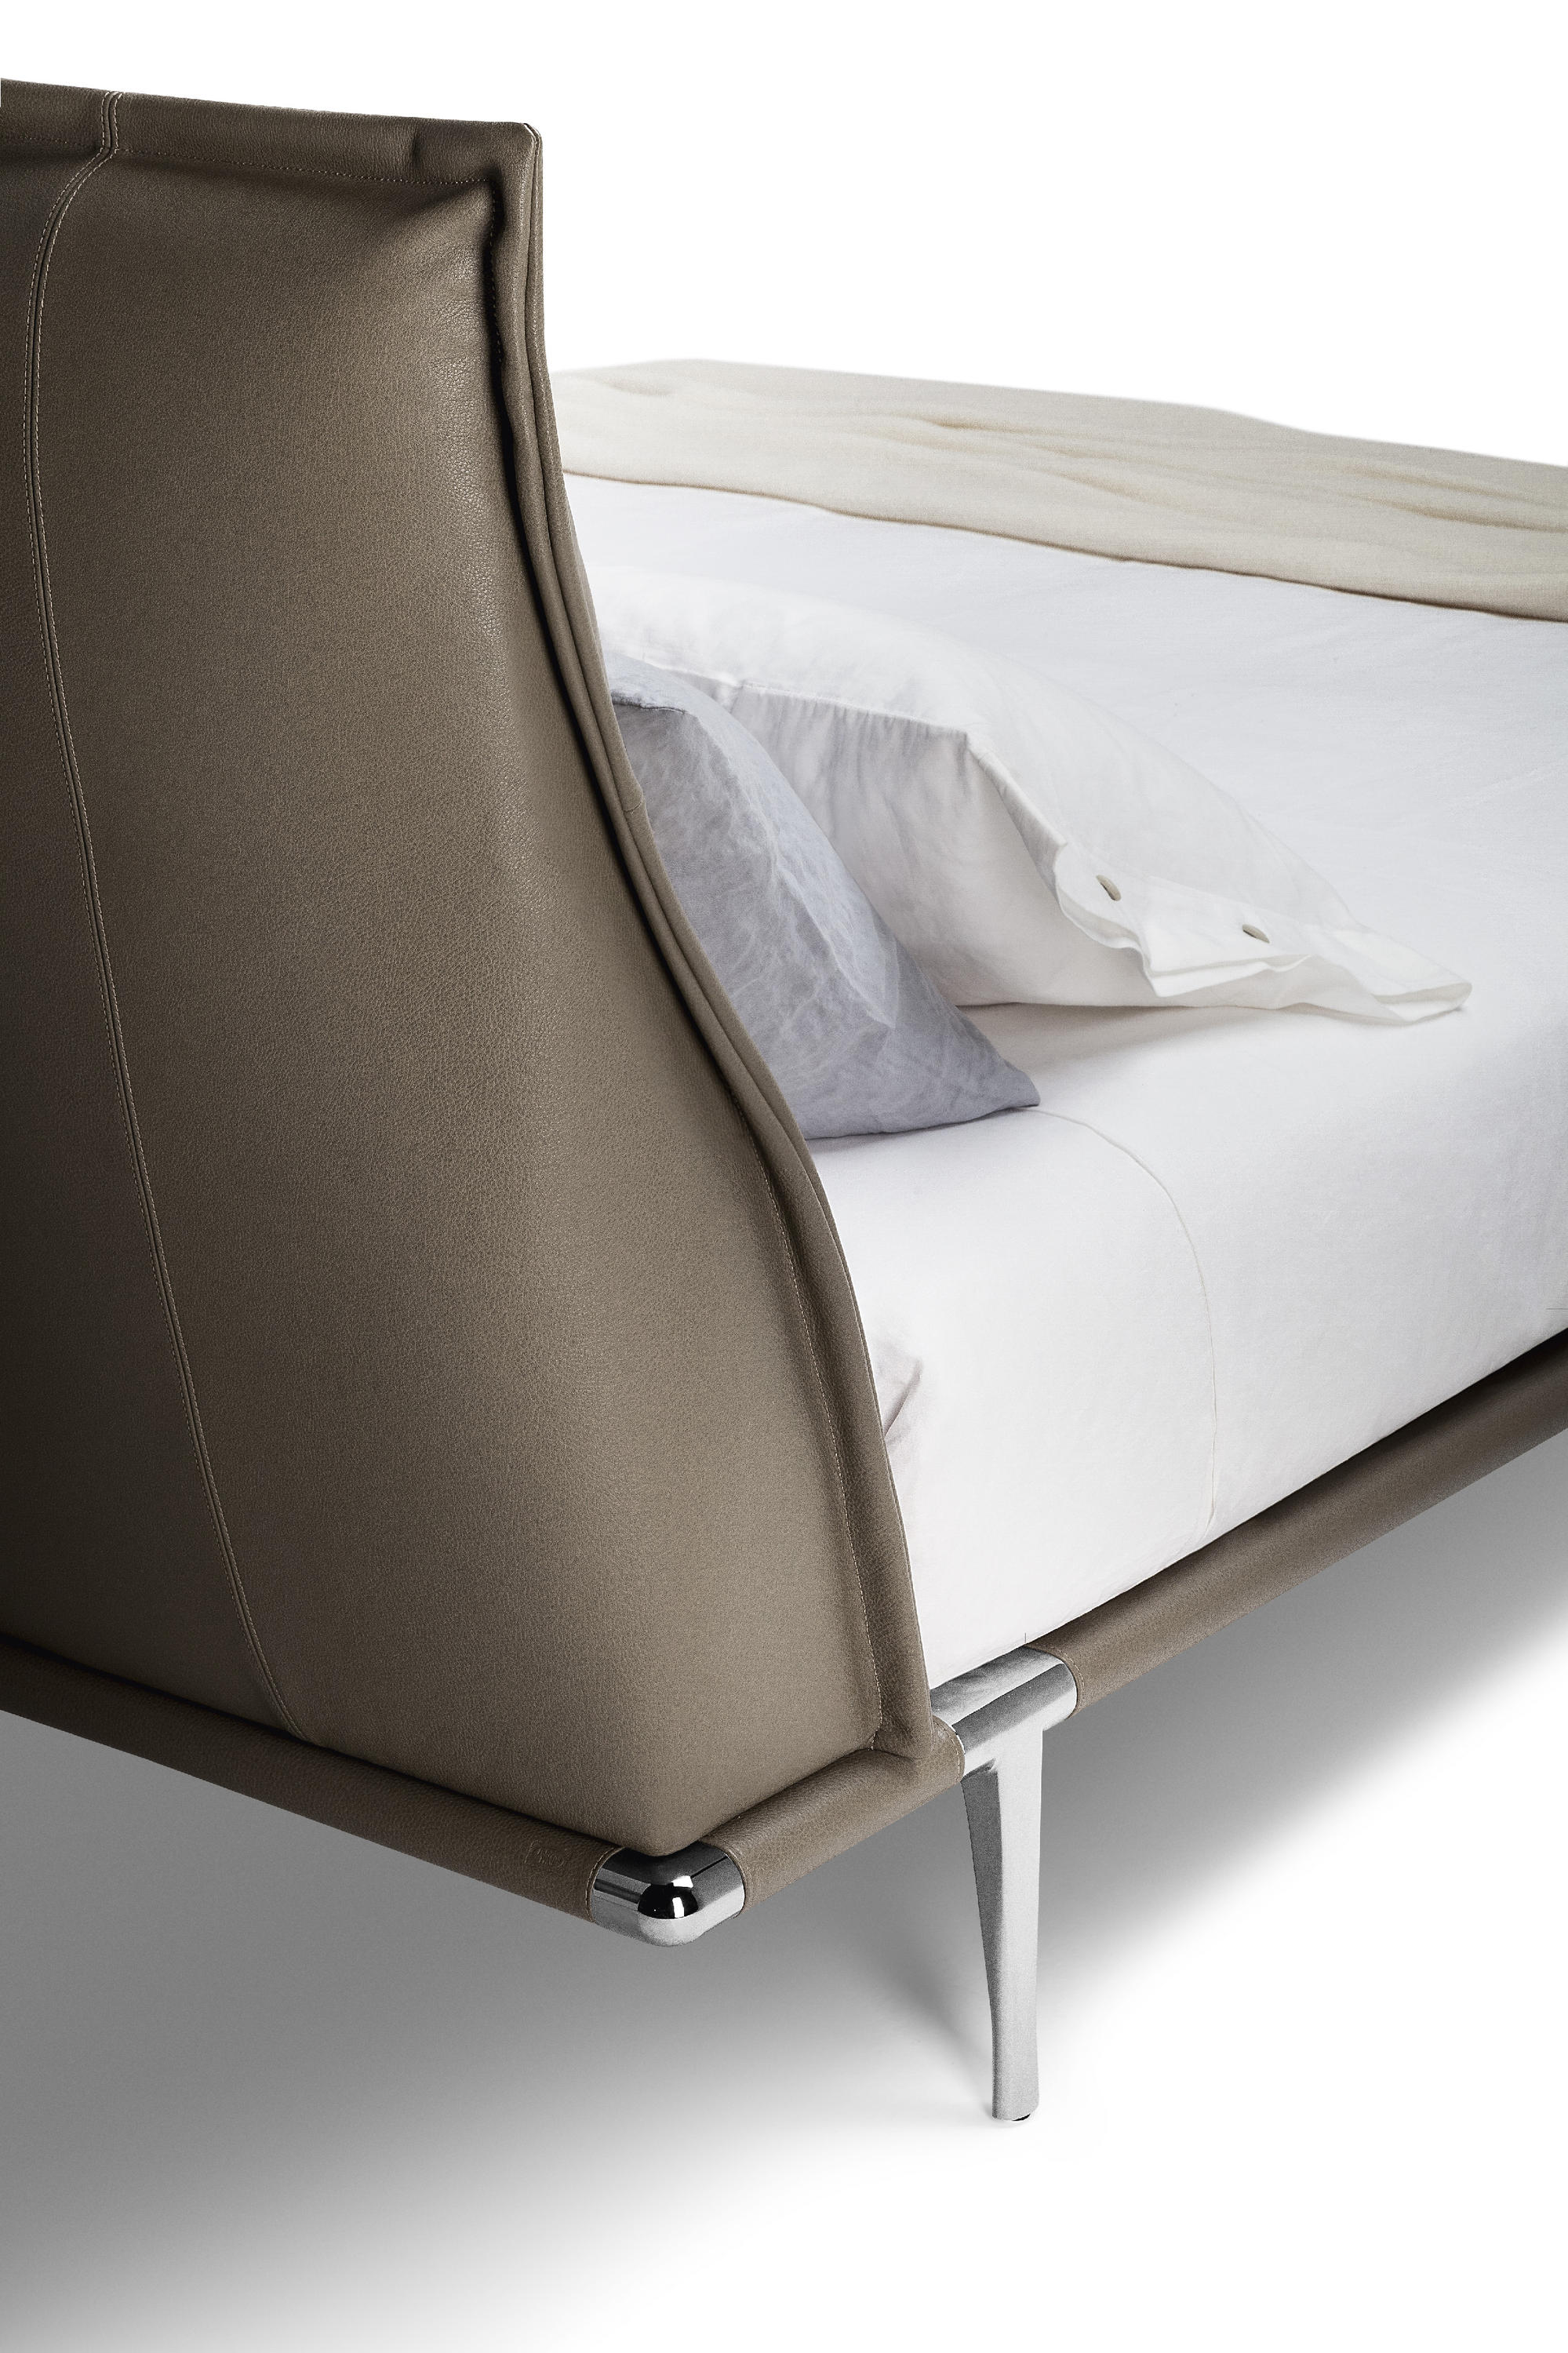 MR MOONLIGHT - Beds from Poltrona Frau | Architonic